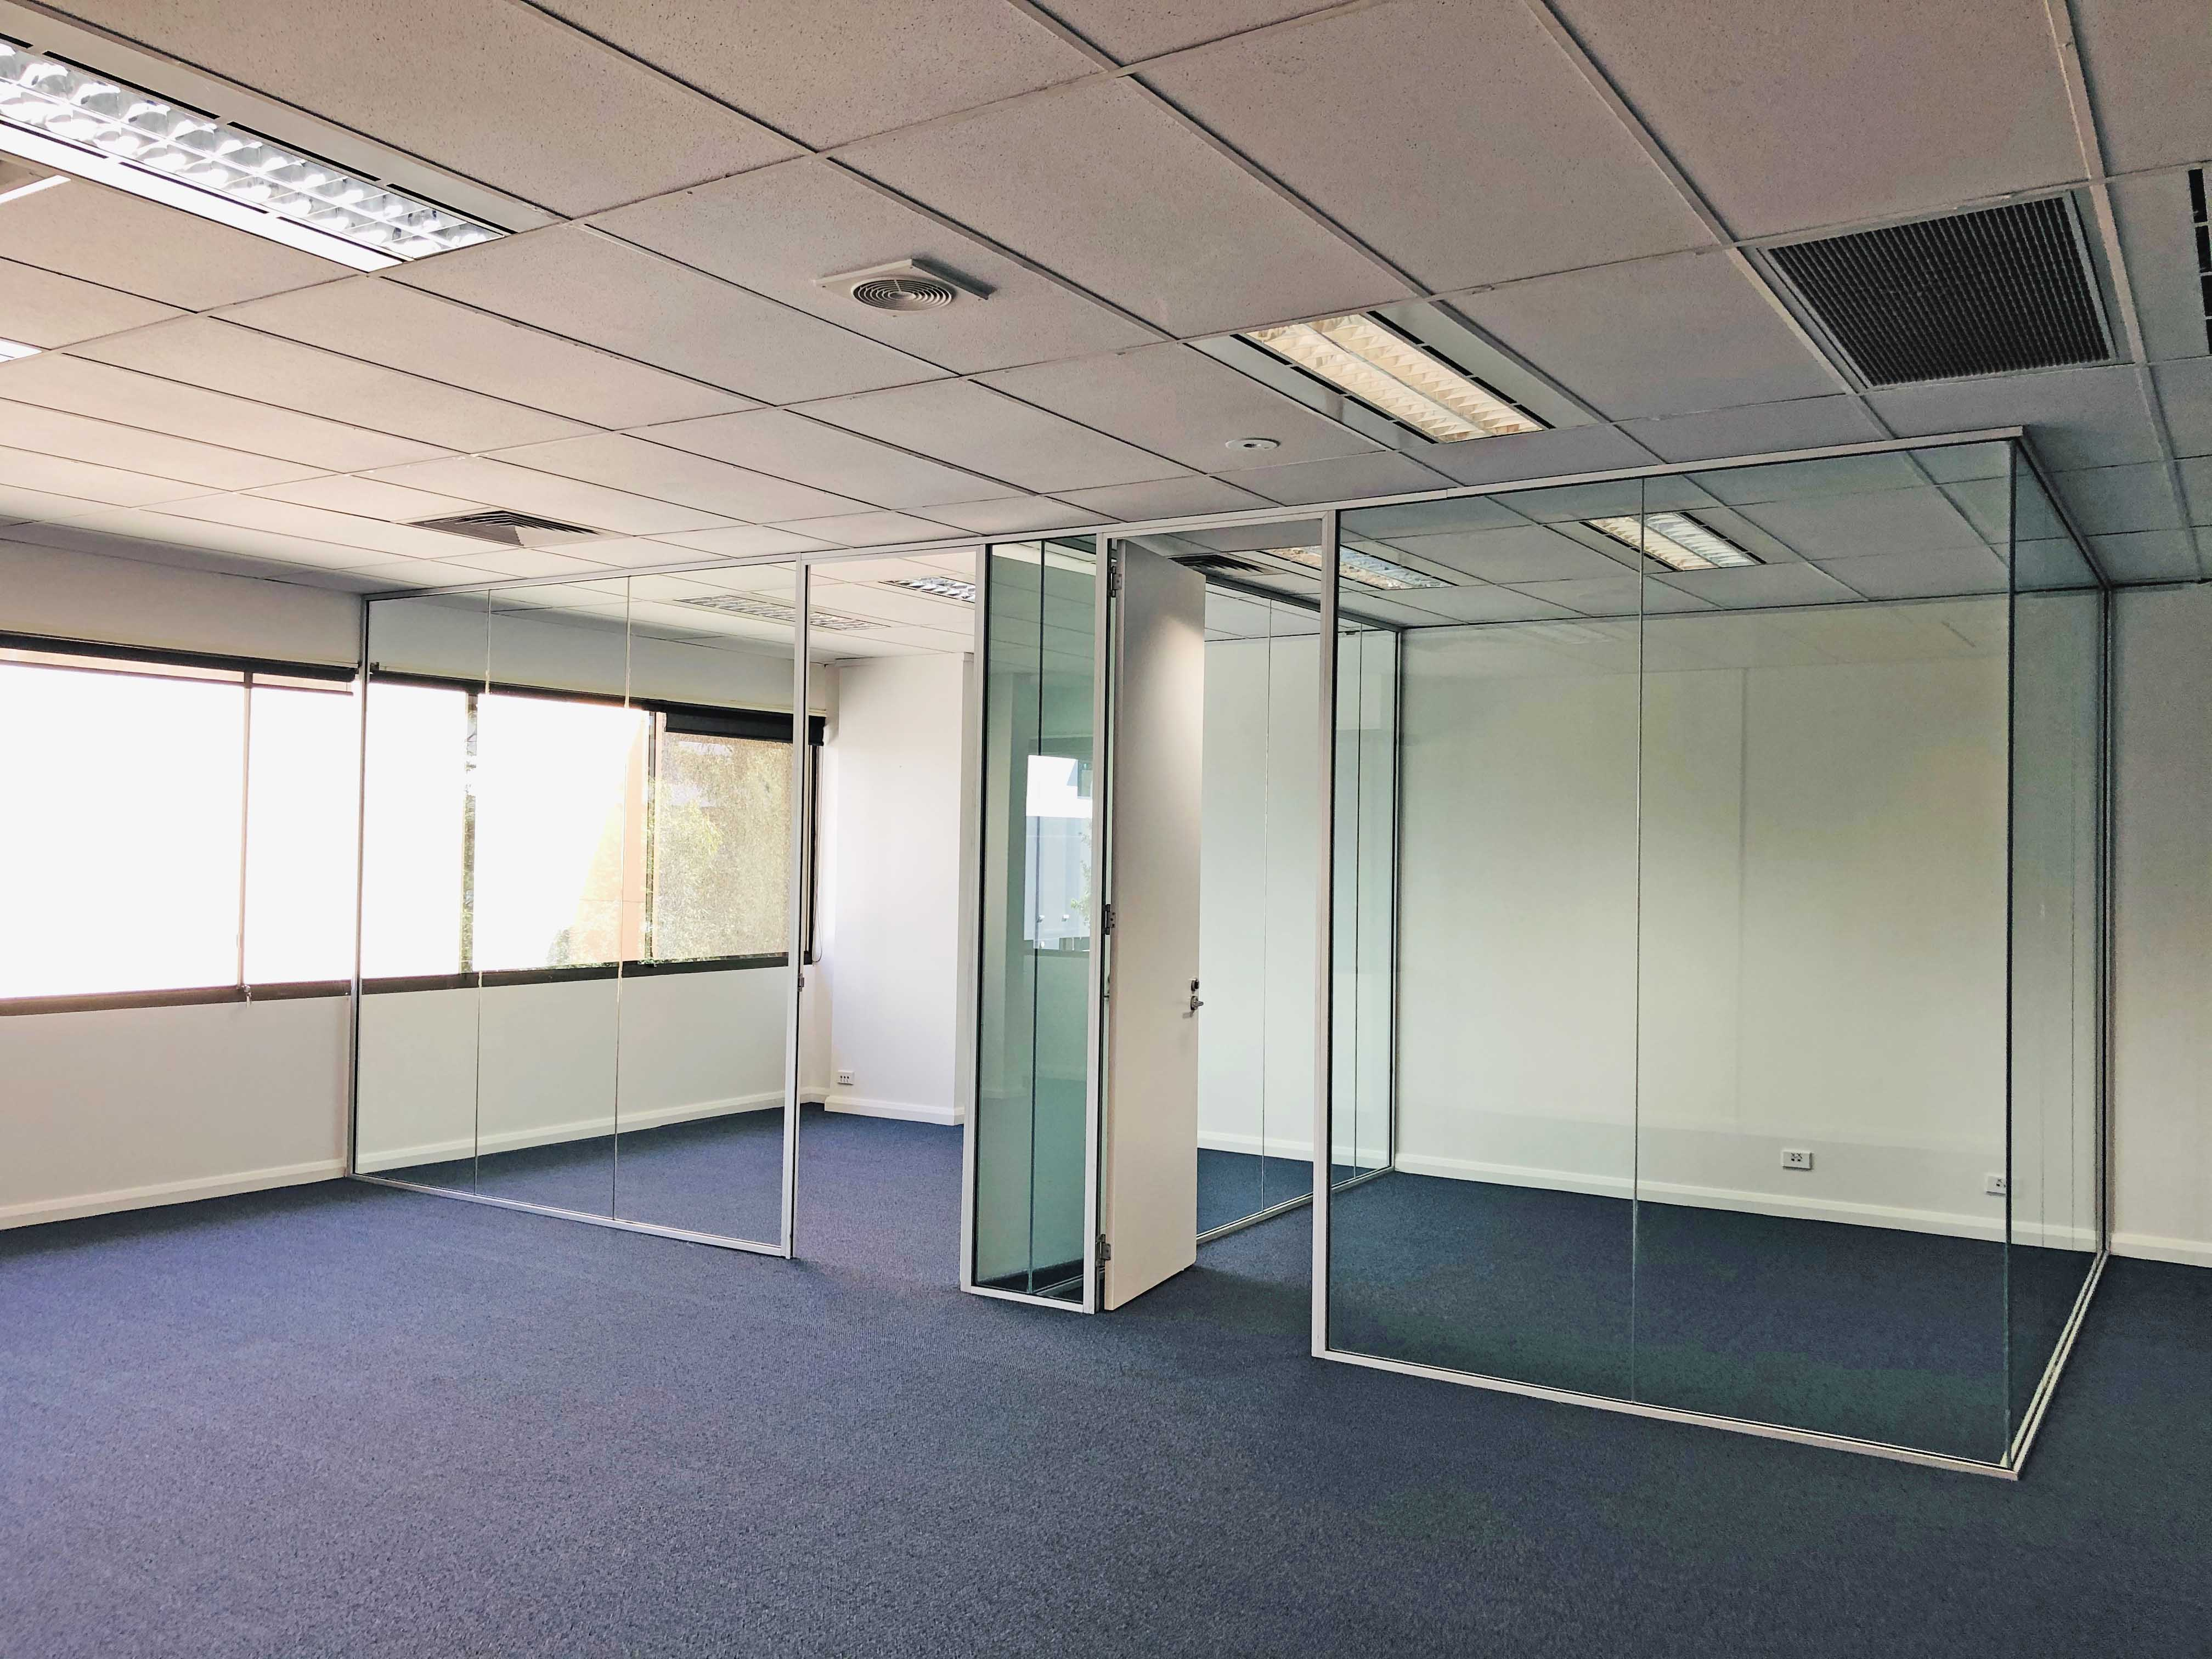 Commercial property for lease in macquarie park 5